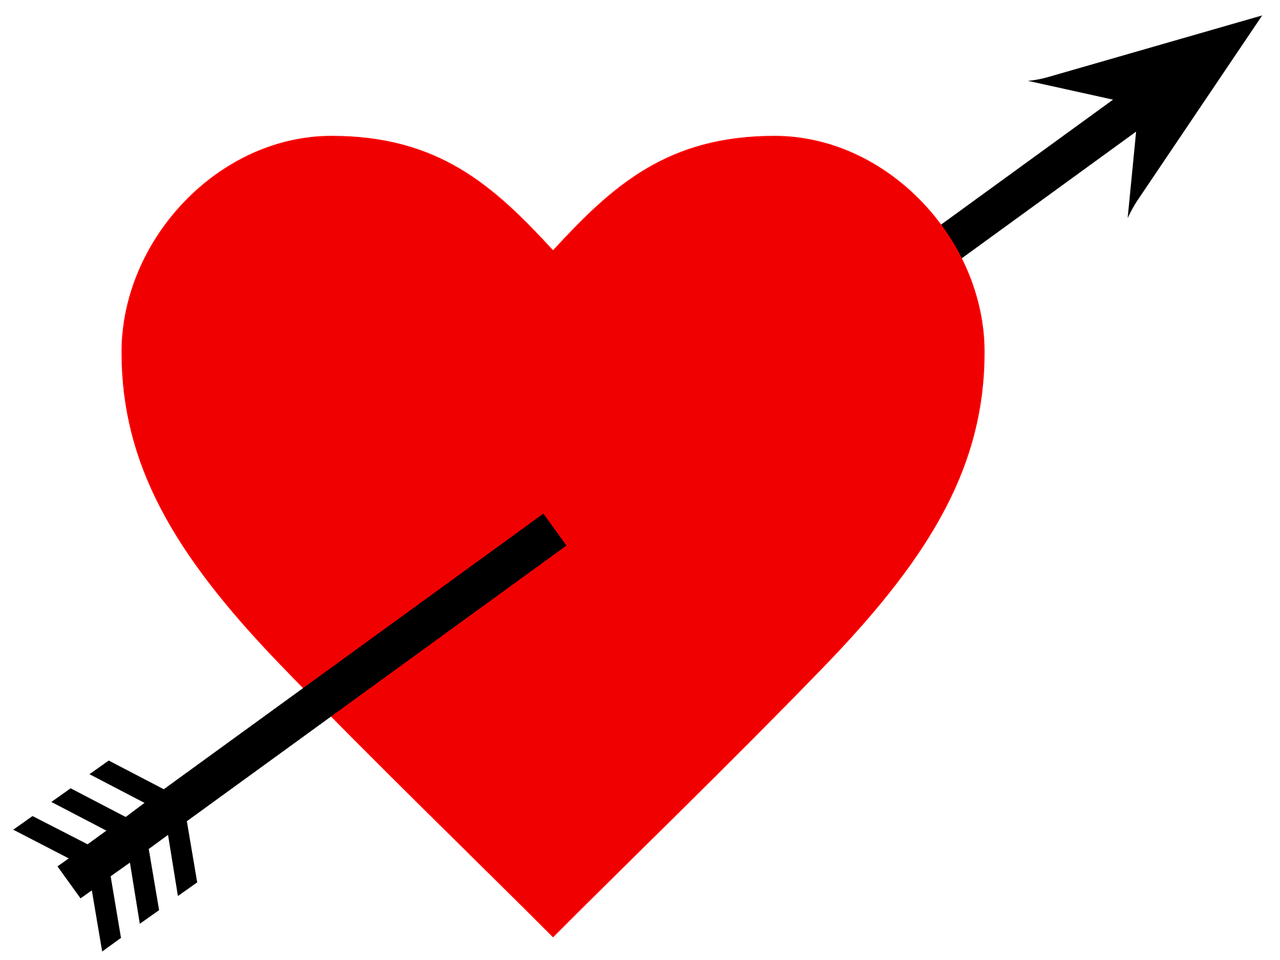 Heart with arrow clipart black picture royalty free download Heart With Black Arrow transparent PNG - StickPNG picture royalty free download